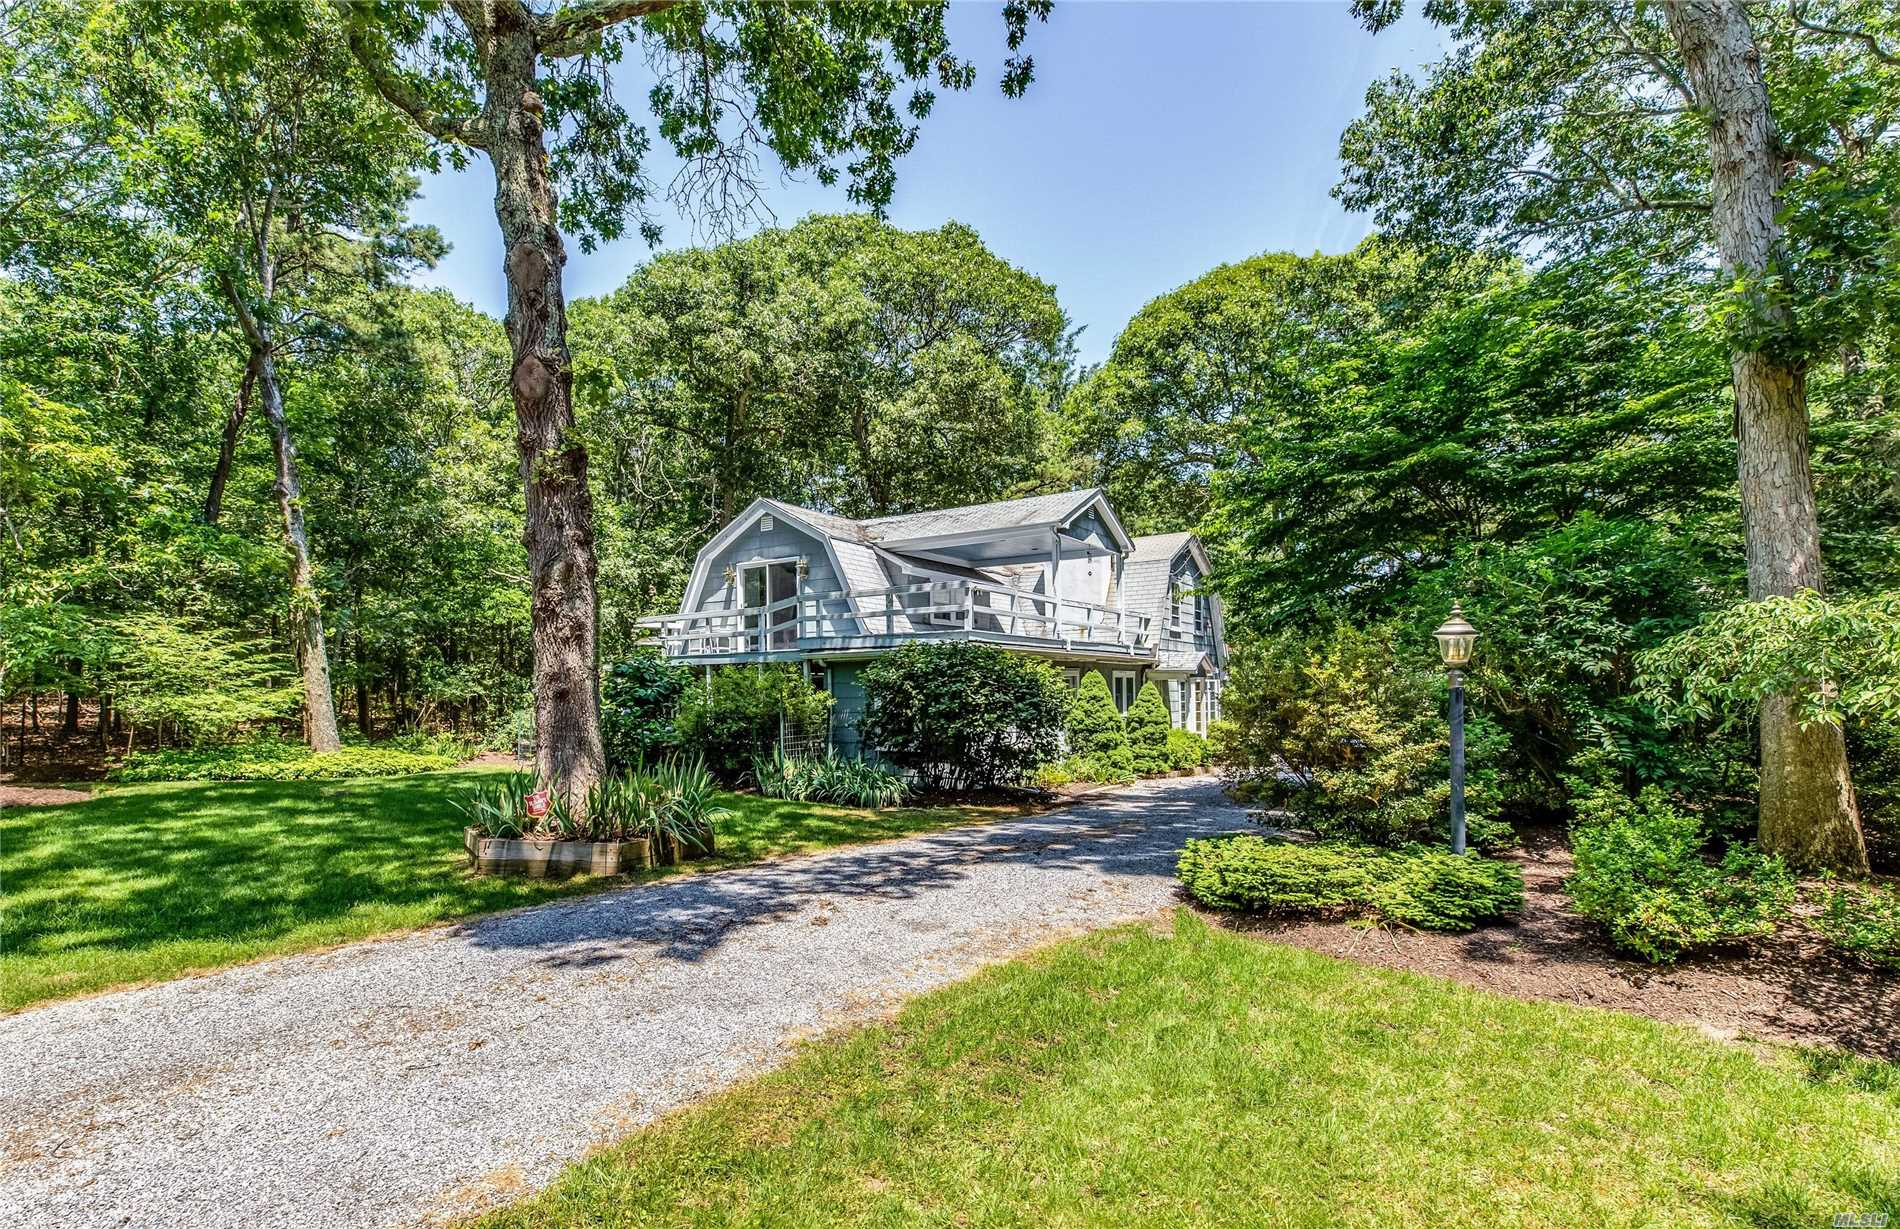 Lovely Gambrel-Roof Two Story Home On .63 Acres Close To Private Nassau Point Bay Front Beach. Master Suite On First Floor, 2 Bedrooms And Bath On Second Floor. Home Has Some Original Features Of 1920'S Chalet-Style Home That Has Been Redesigned And Enlarged. Large Great Room, Eat-In Kitchen And 3-Season Porch. Nicely Landscaped With Mature Plantings.